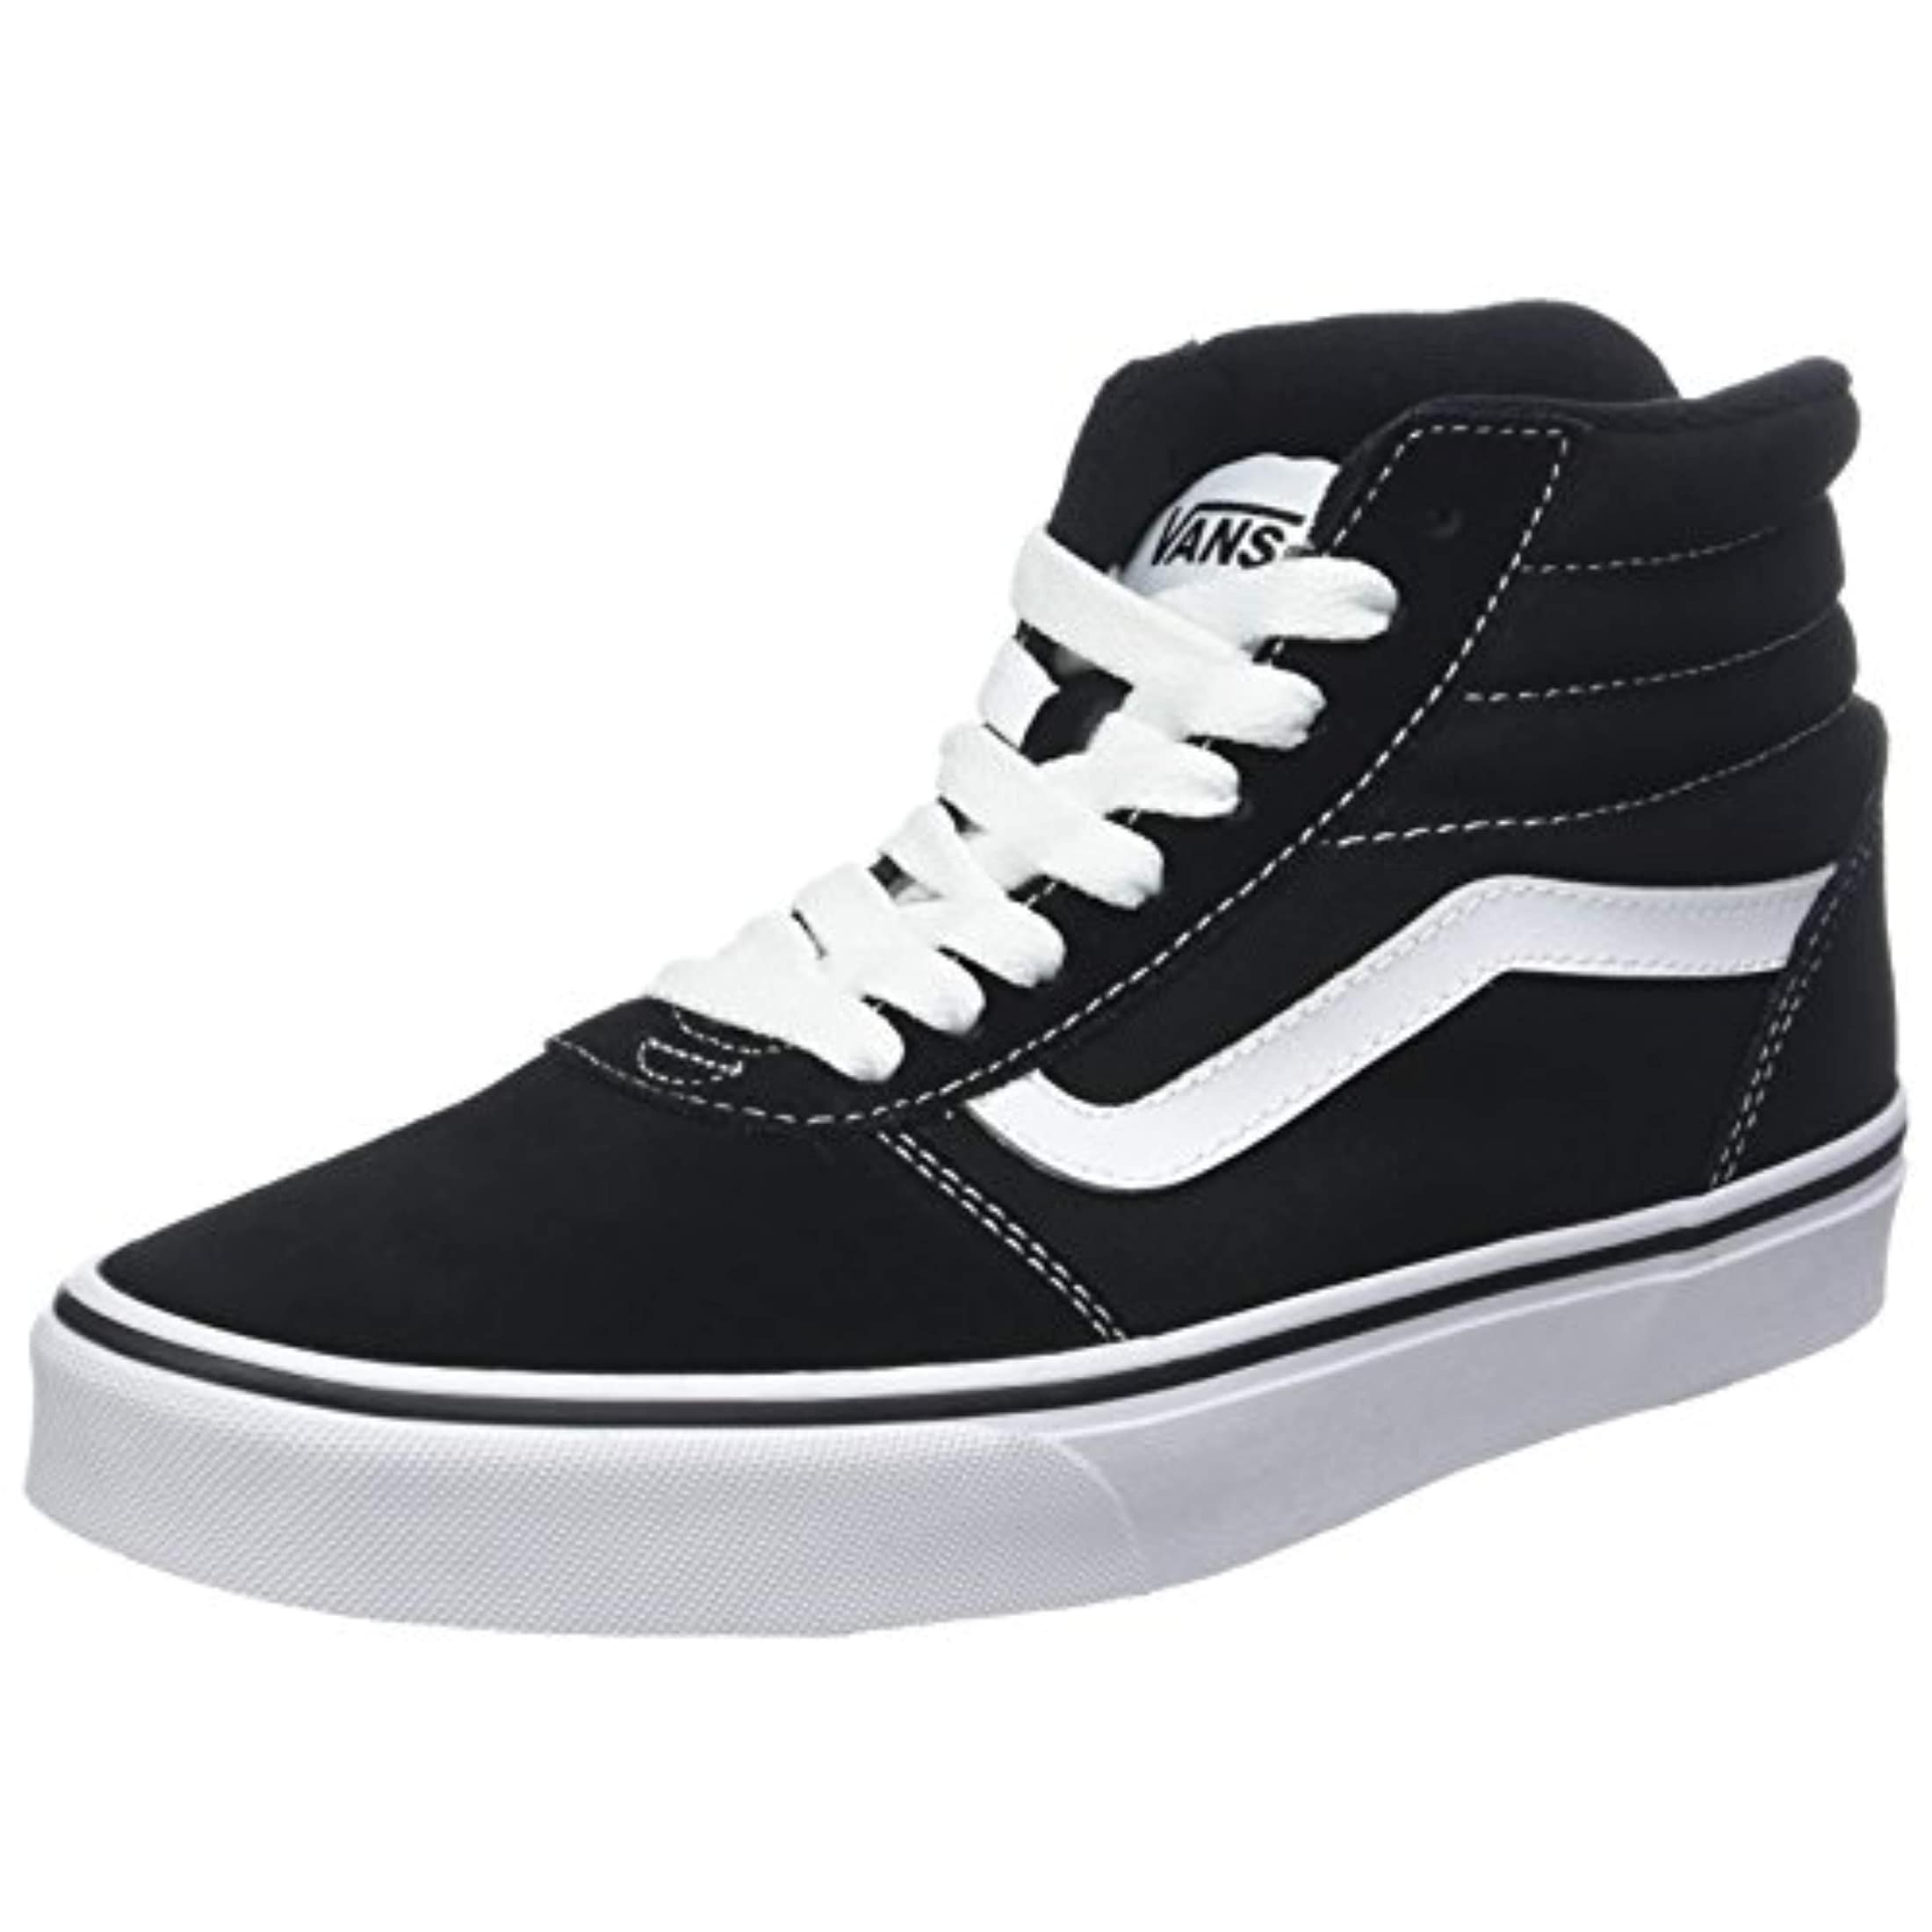 a1a383f2963466 Size 9.5 Vans Men s Shoes